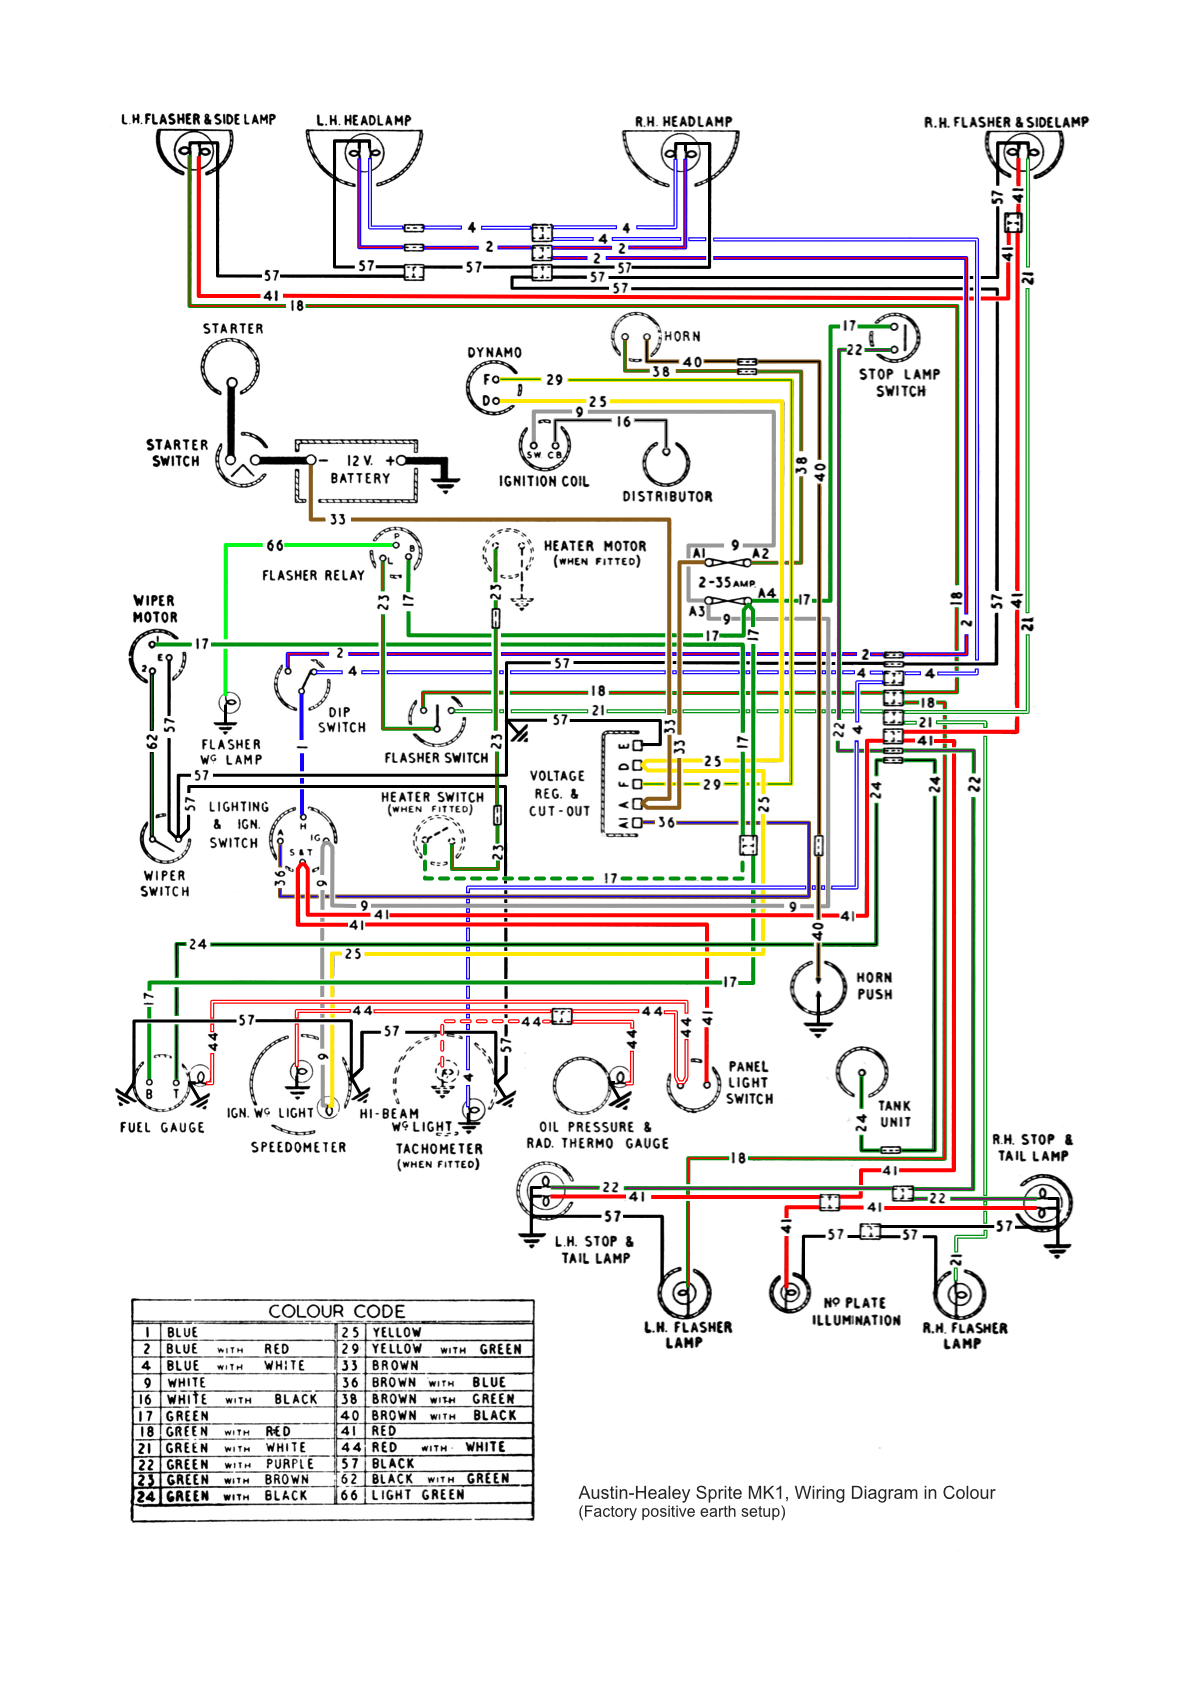 Amazing Midget Wiring Diagram Images Best Image Wire kinkajous